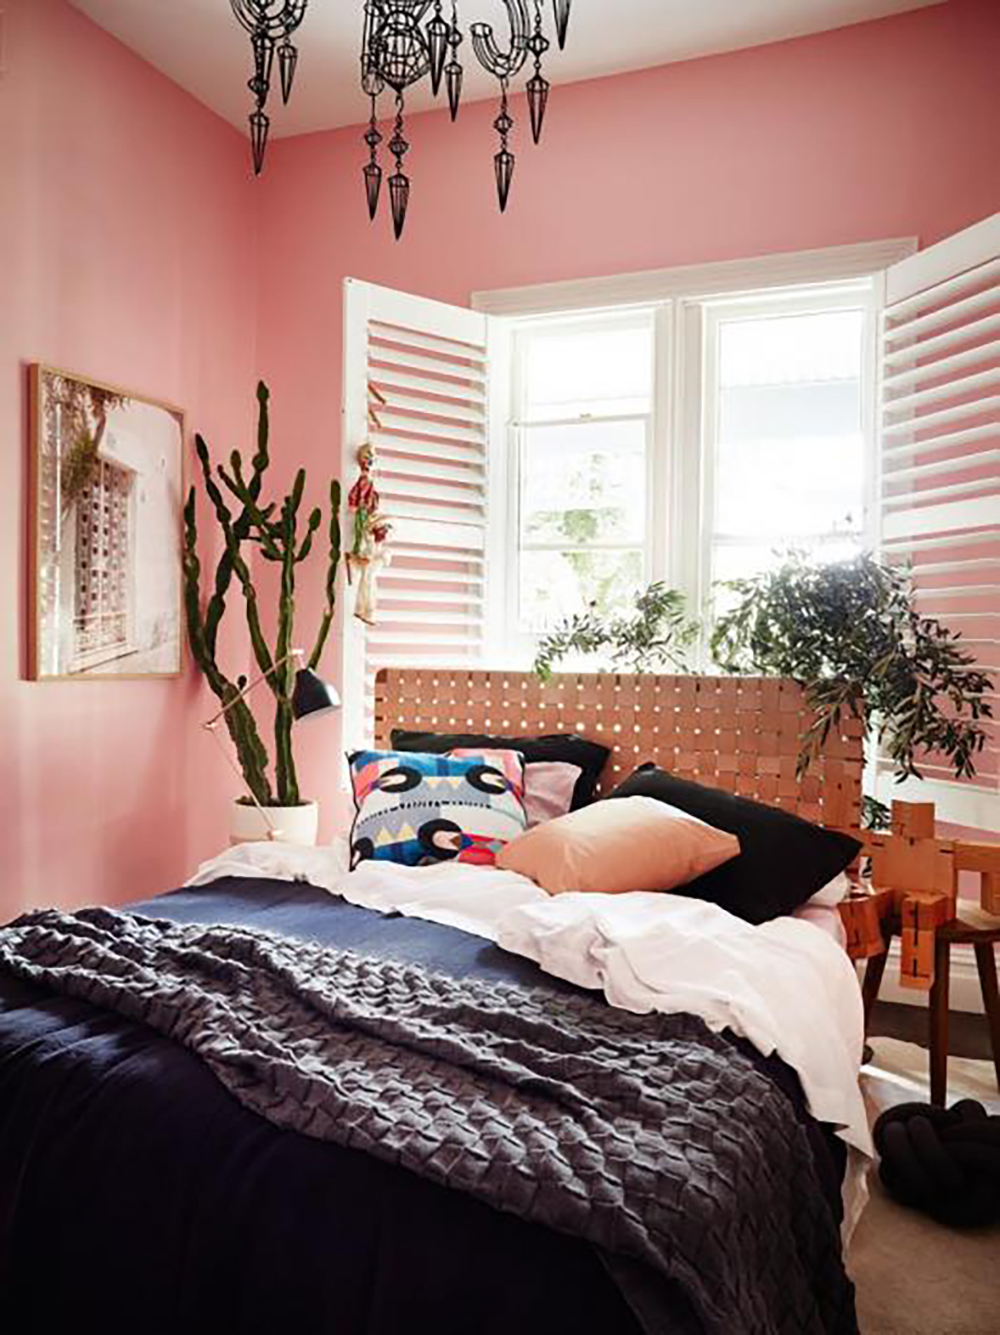 Aleha Rose pink bedroom by Haymes paint - Warm up your home with pink wall colour | Aliz's Wonderland